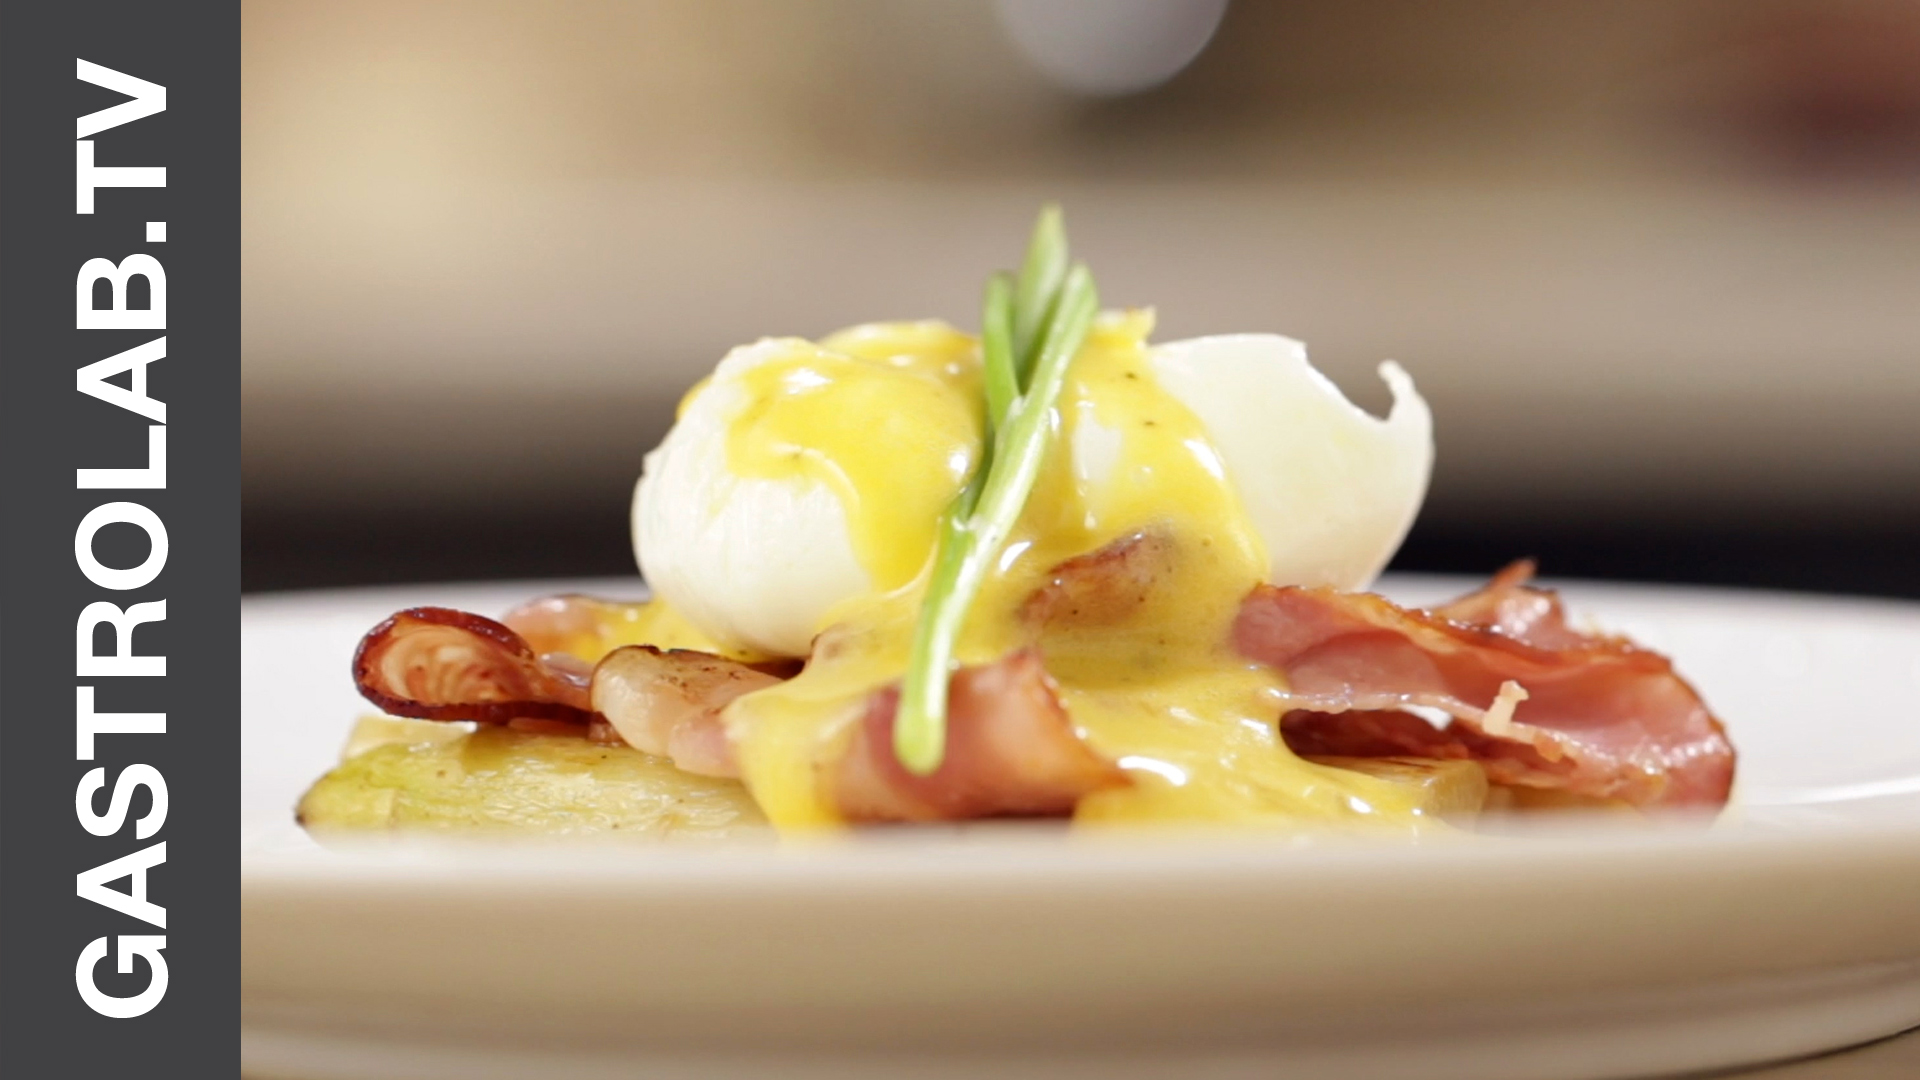 How to Make Eggs Benedict With White Asparagus